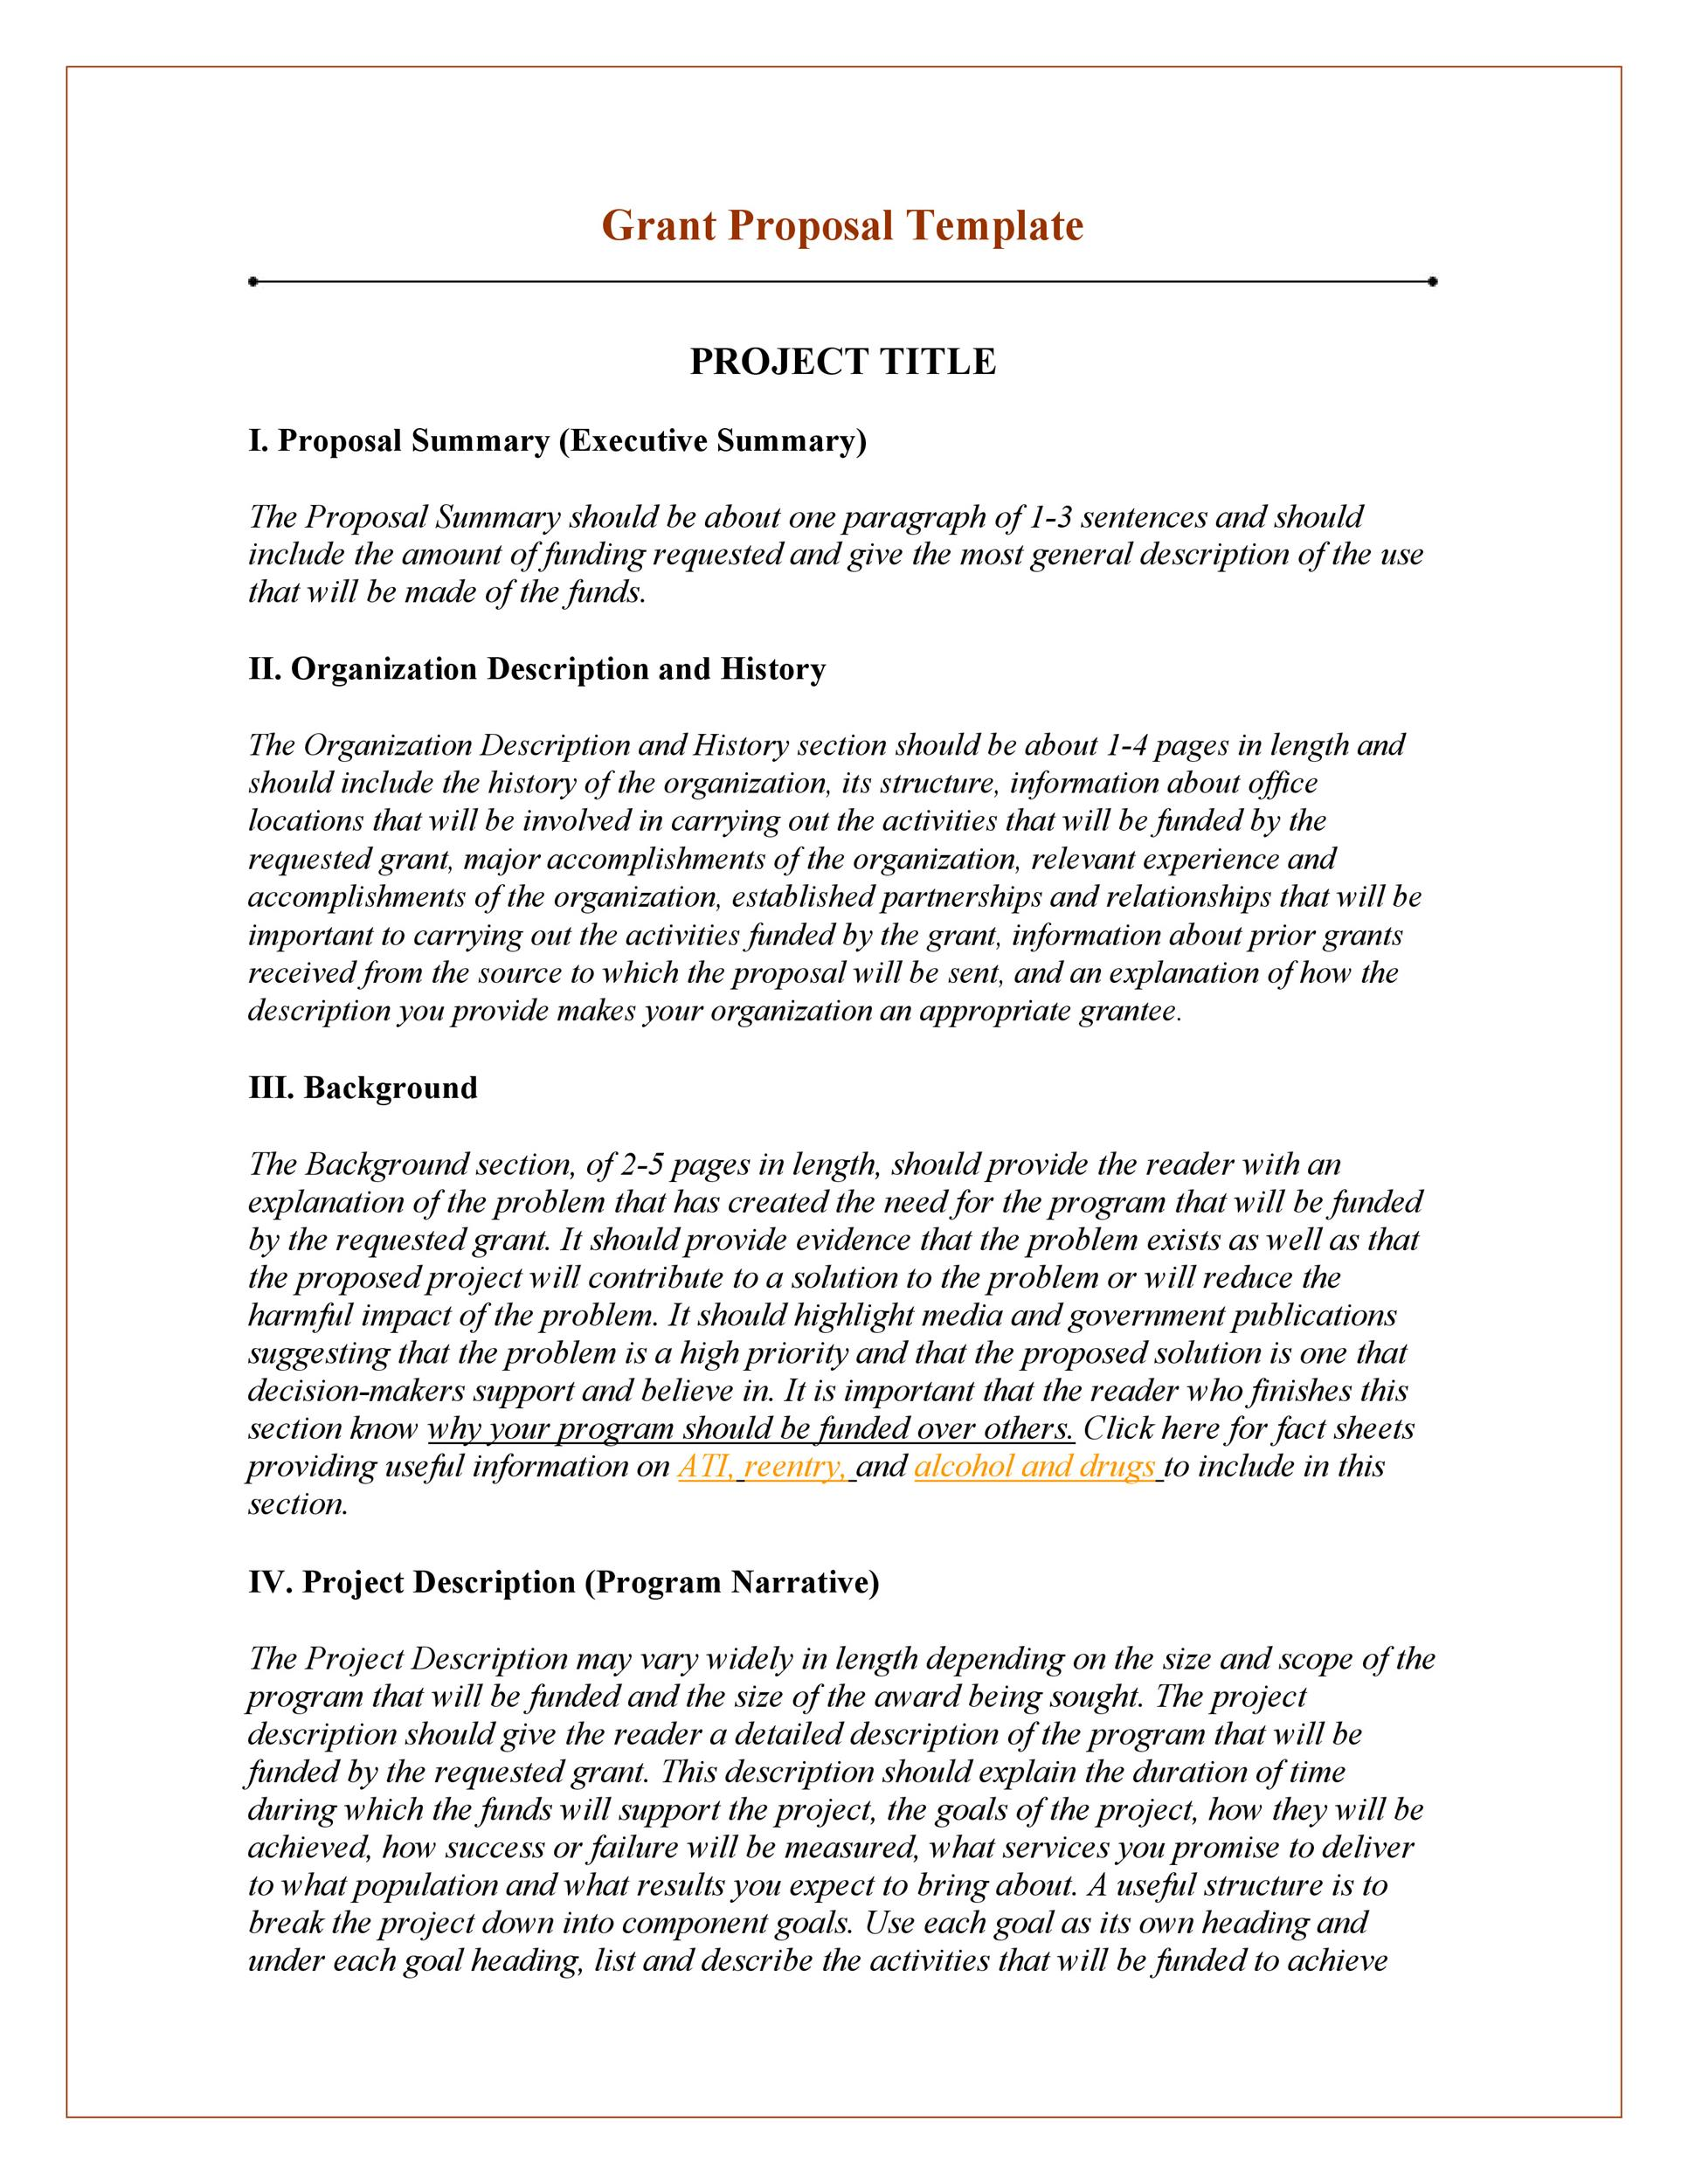 Grant proposal for Grant template for nonprofit